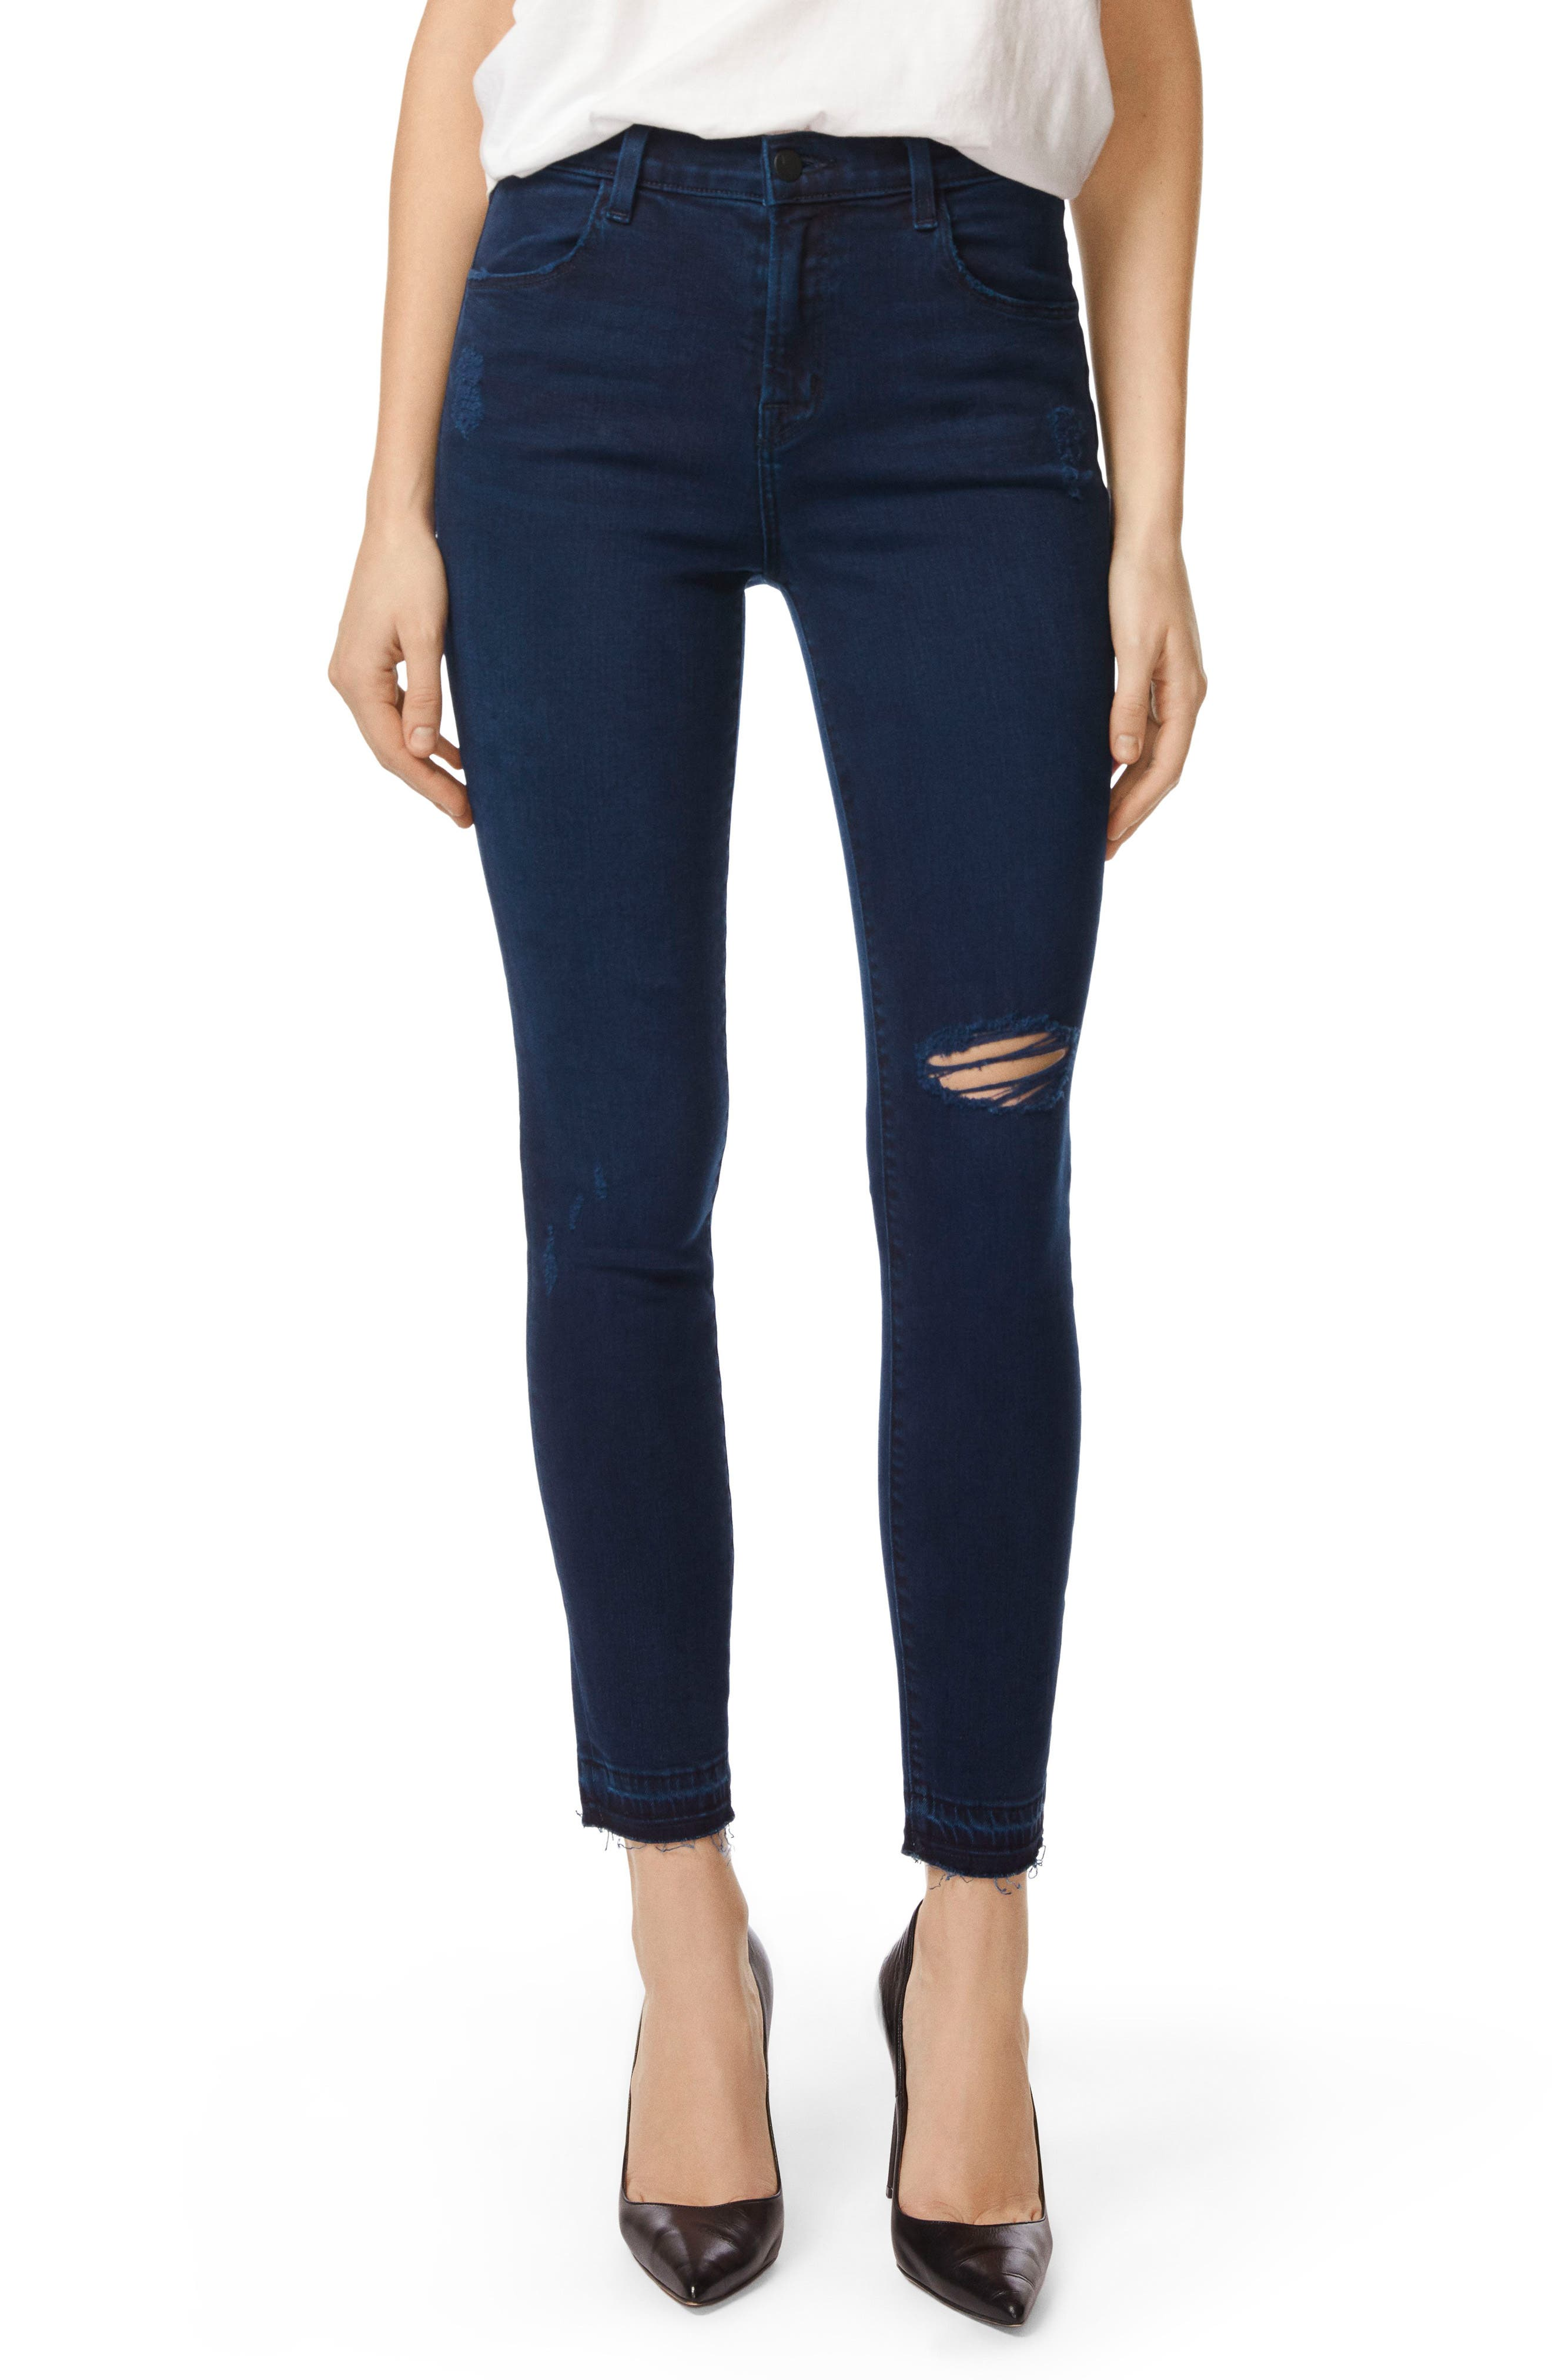 Alana Released Hem High Rise Crop Skinny Jeans,                         Main,                         color, INVOKE DESTRUCT